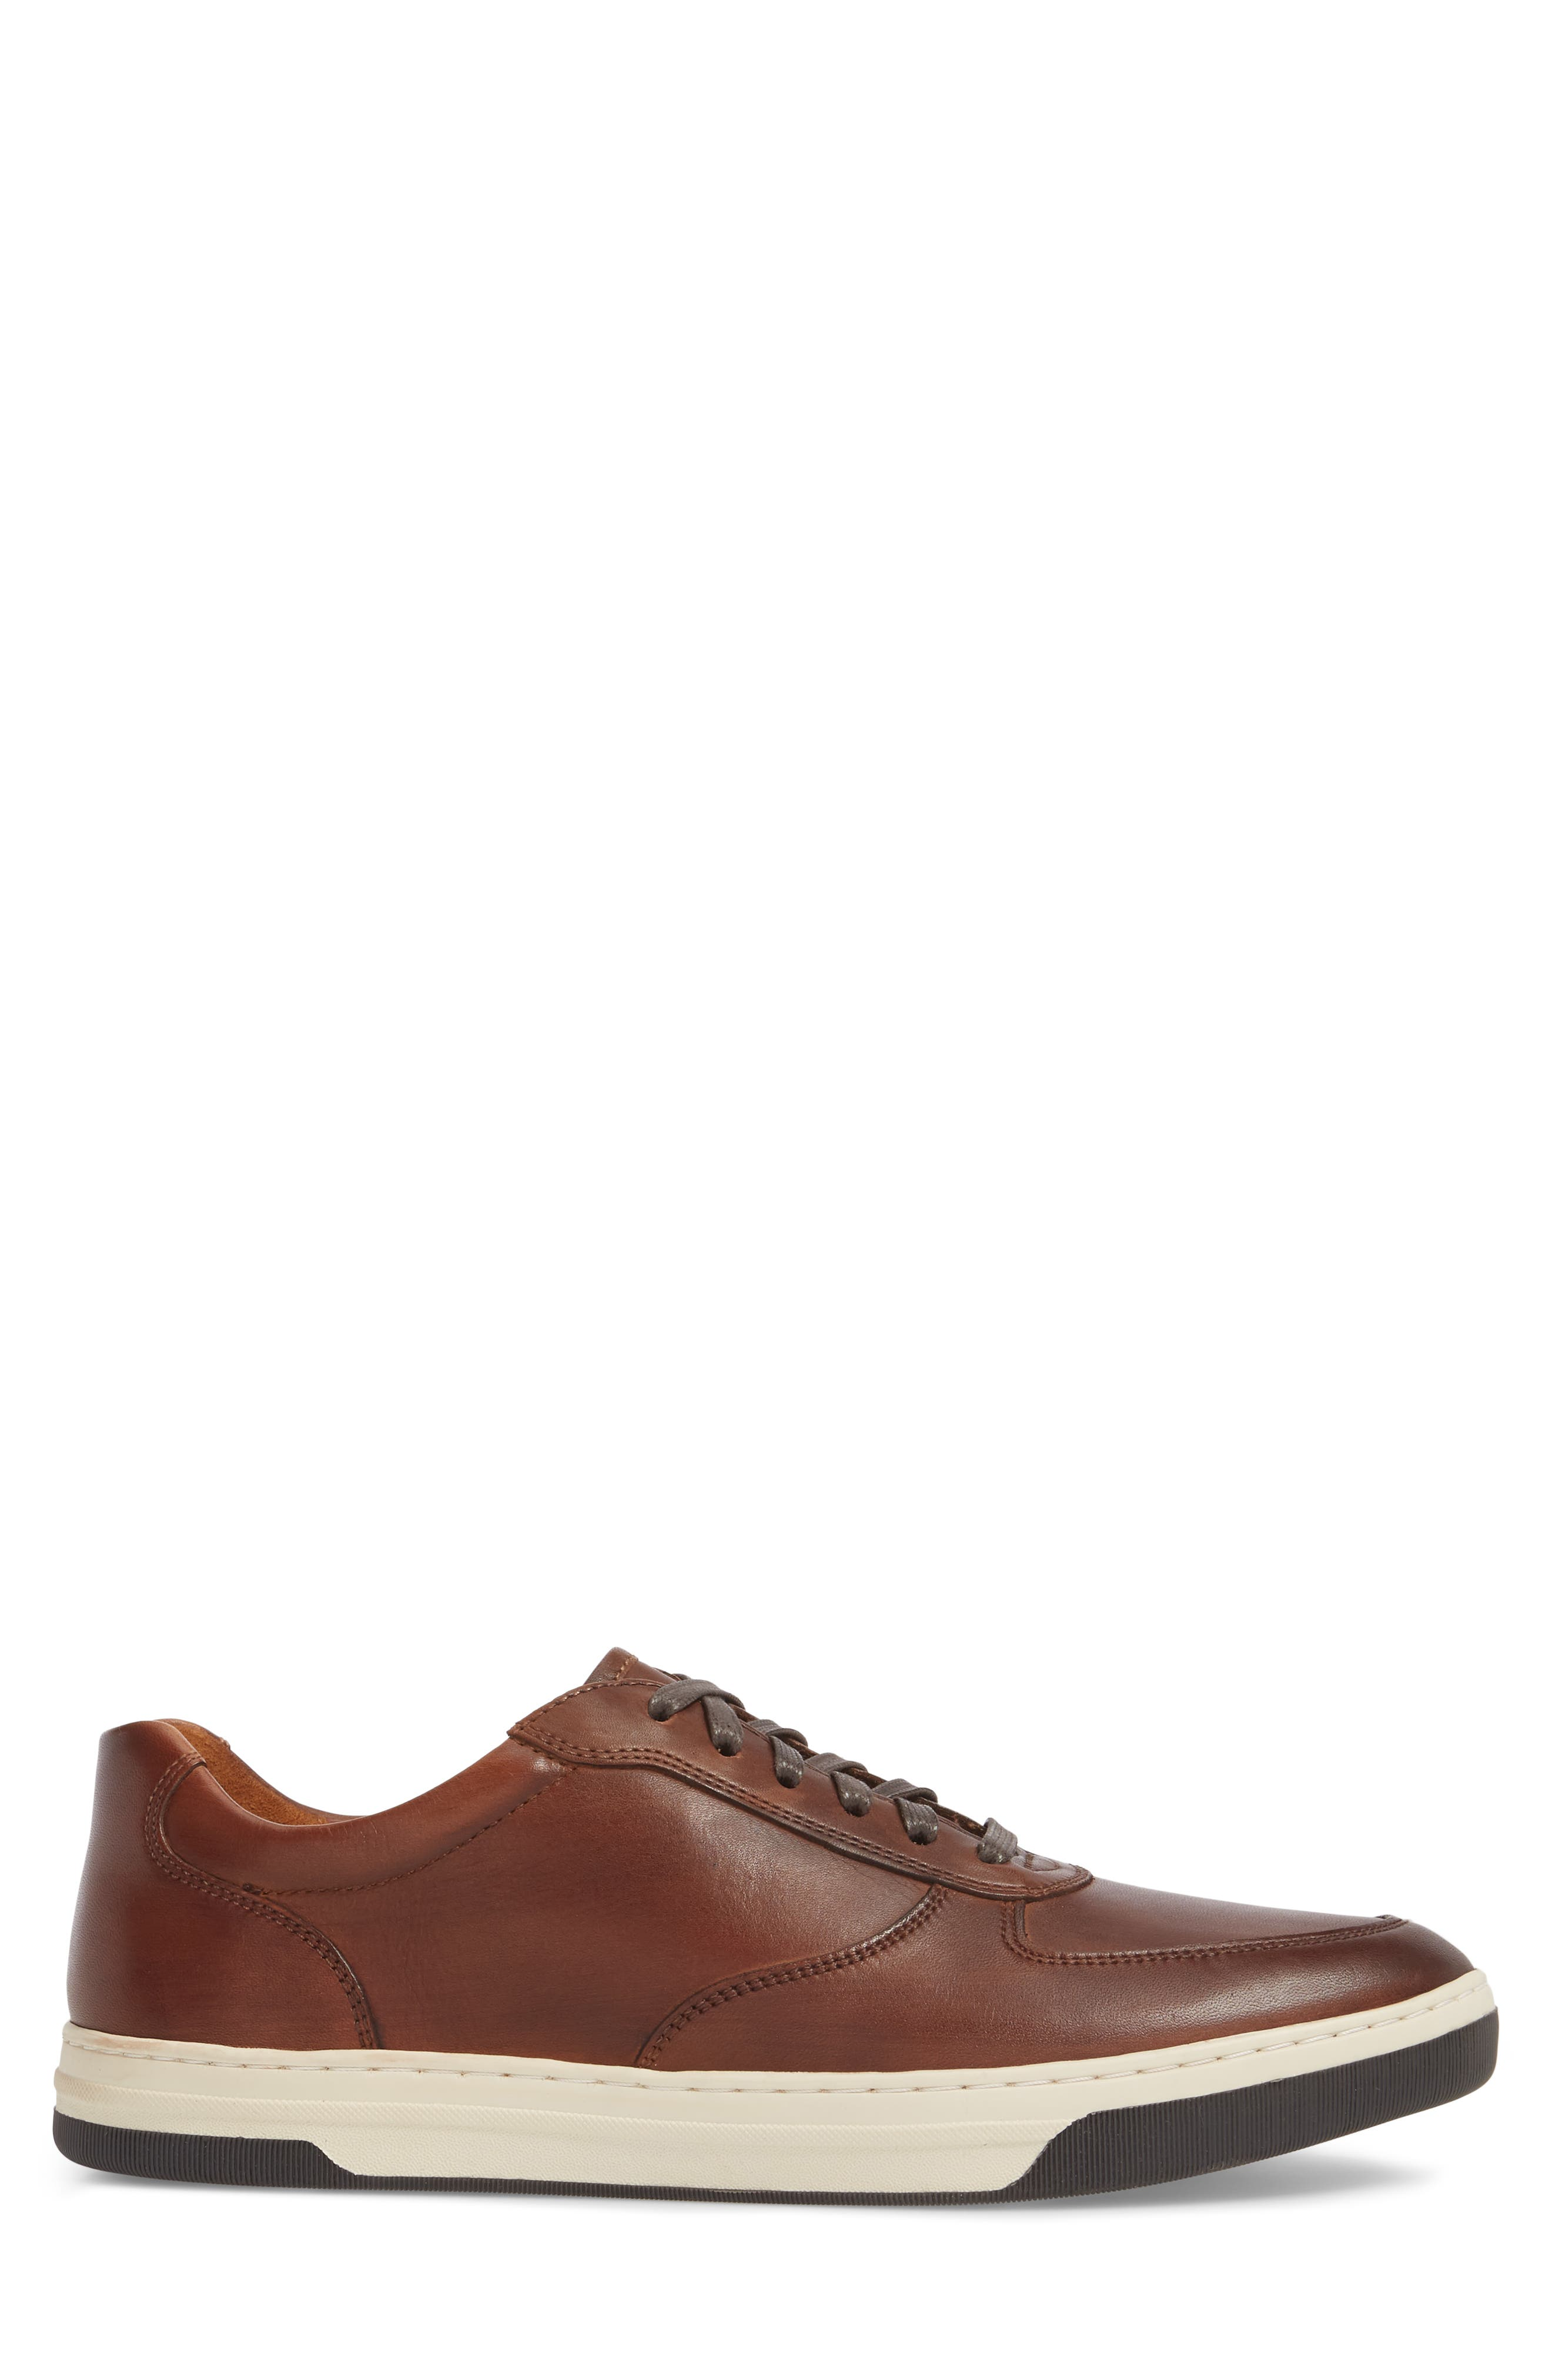 Alternate Image 3  - Johnston & Murphy Fenton Low Top Sneaker (Men)